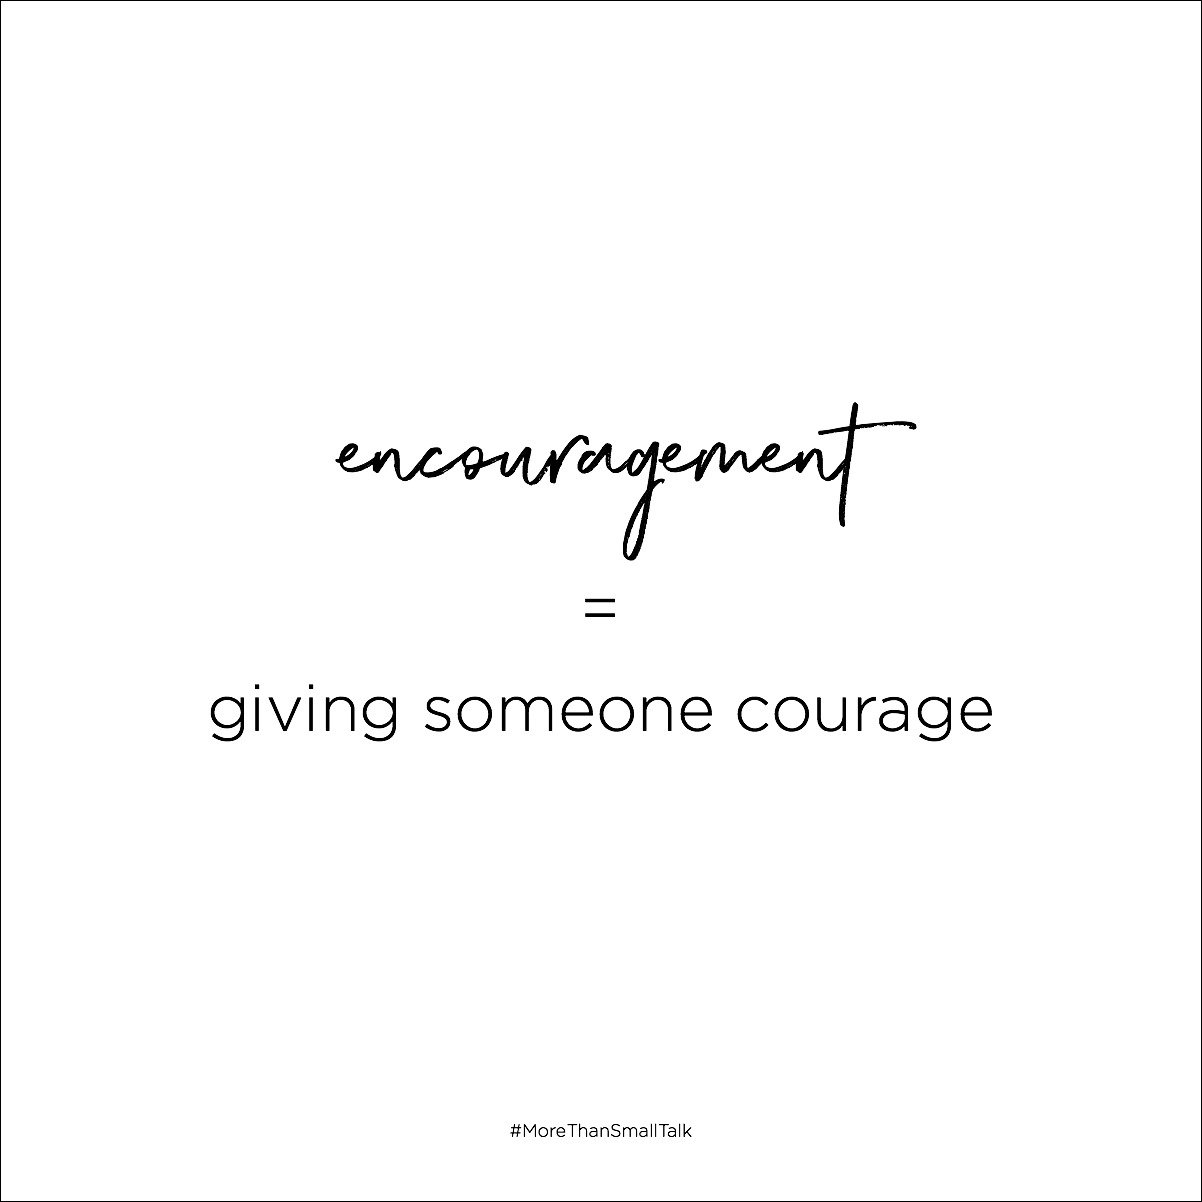 Encouragement literally means to give someone courage.